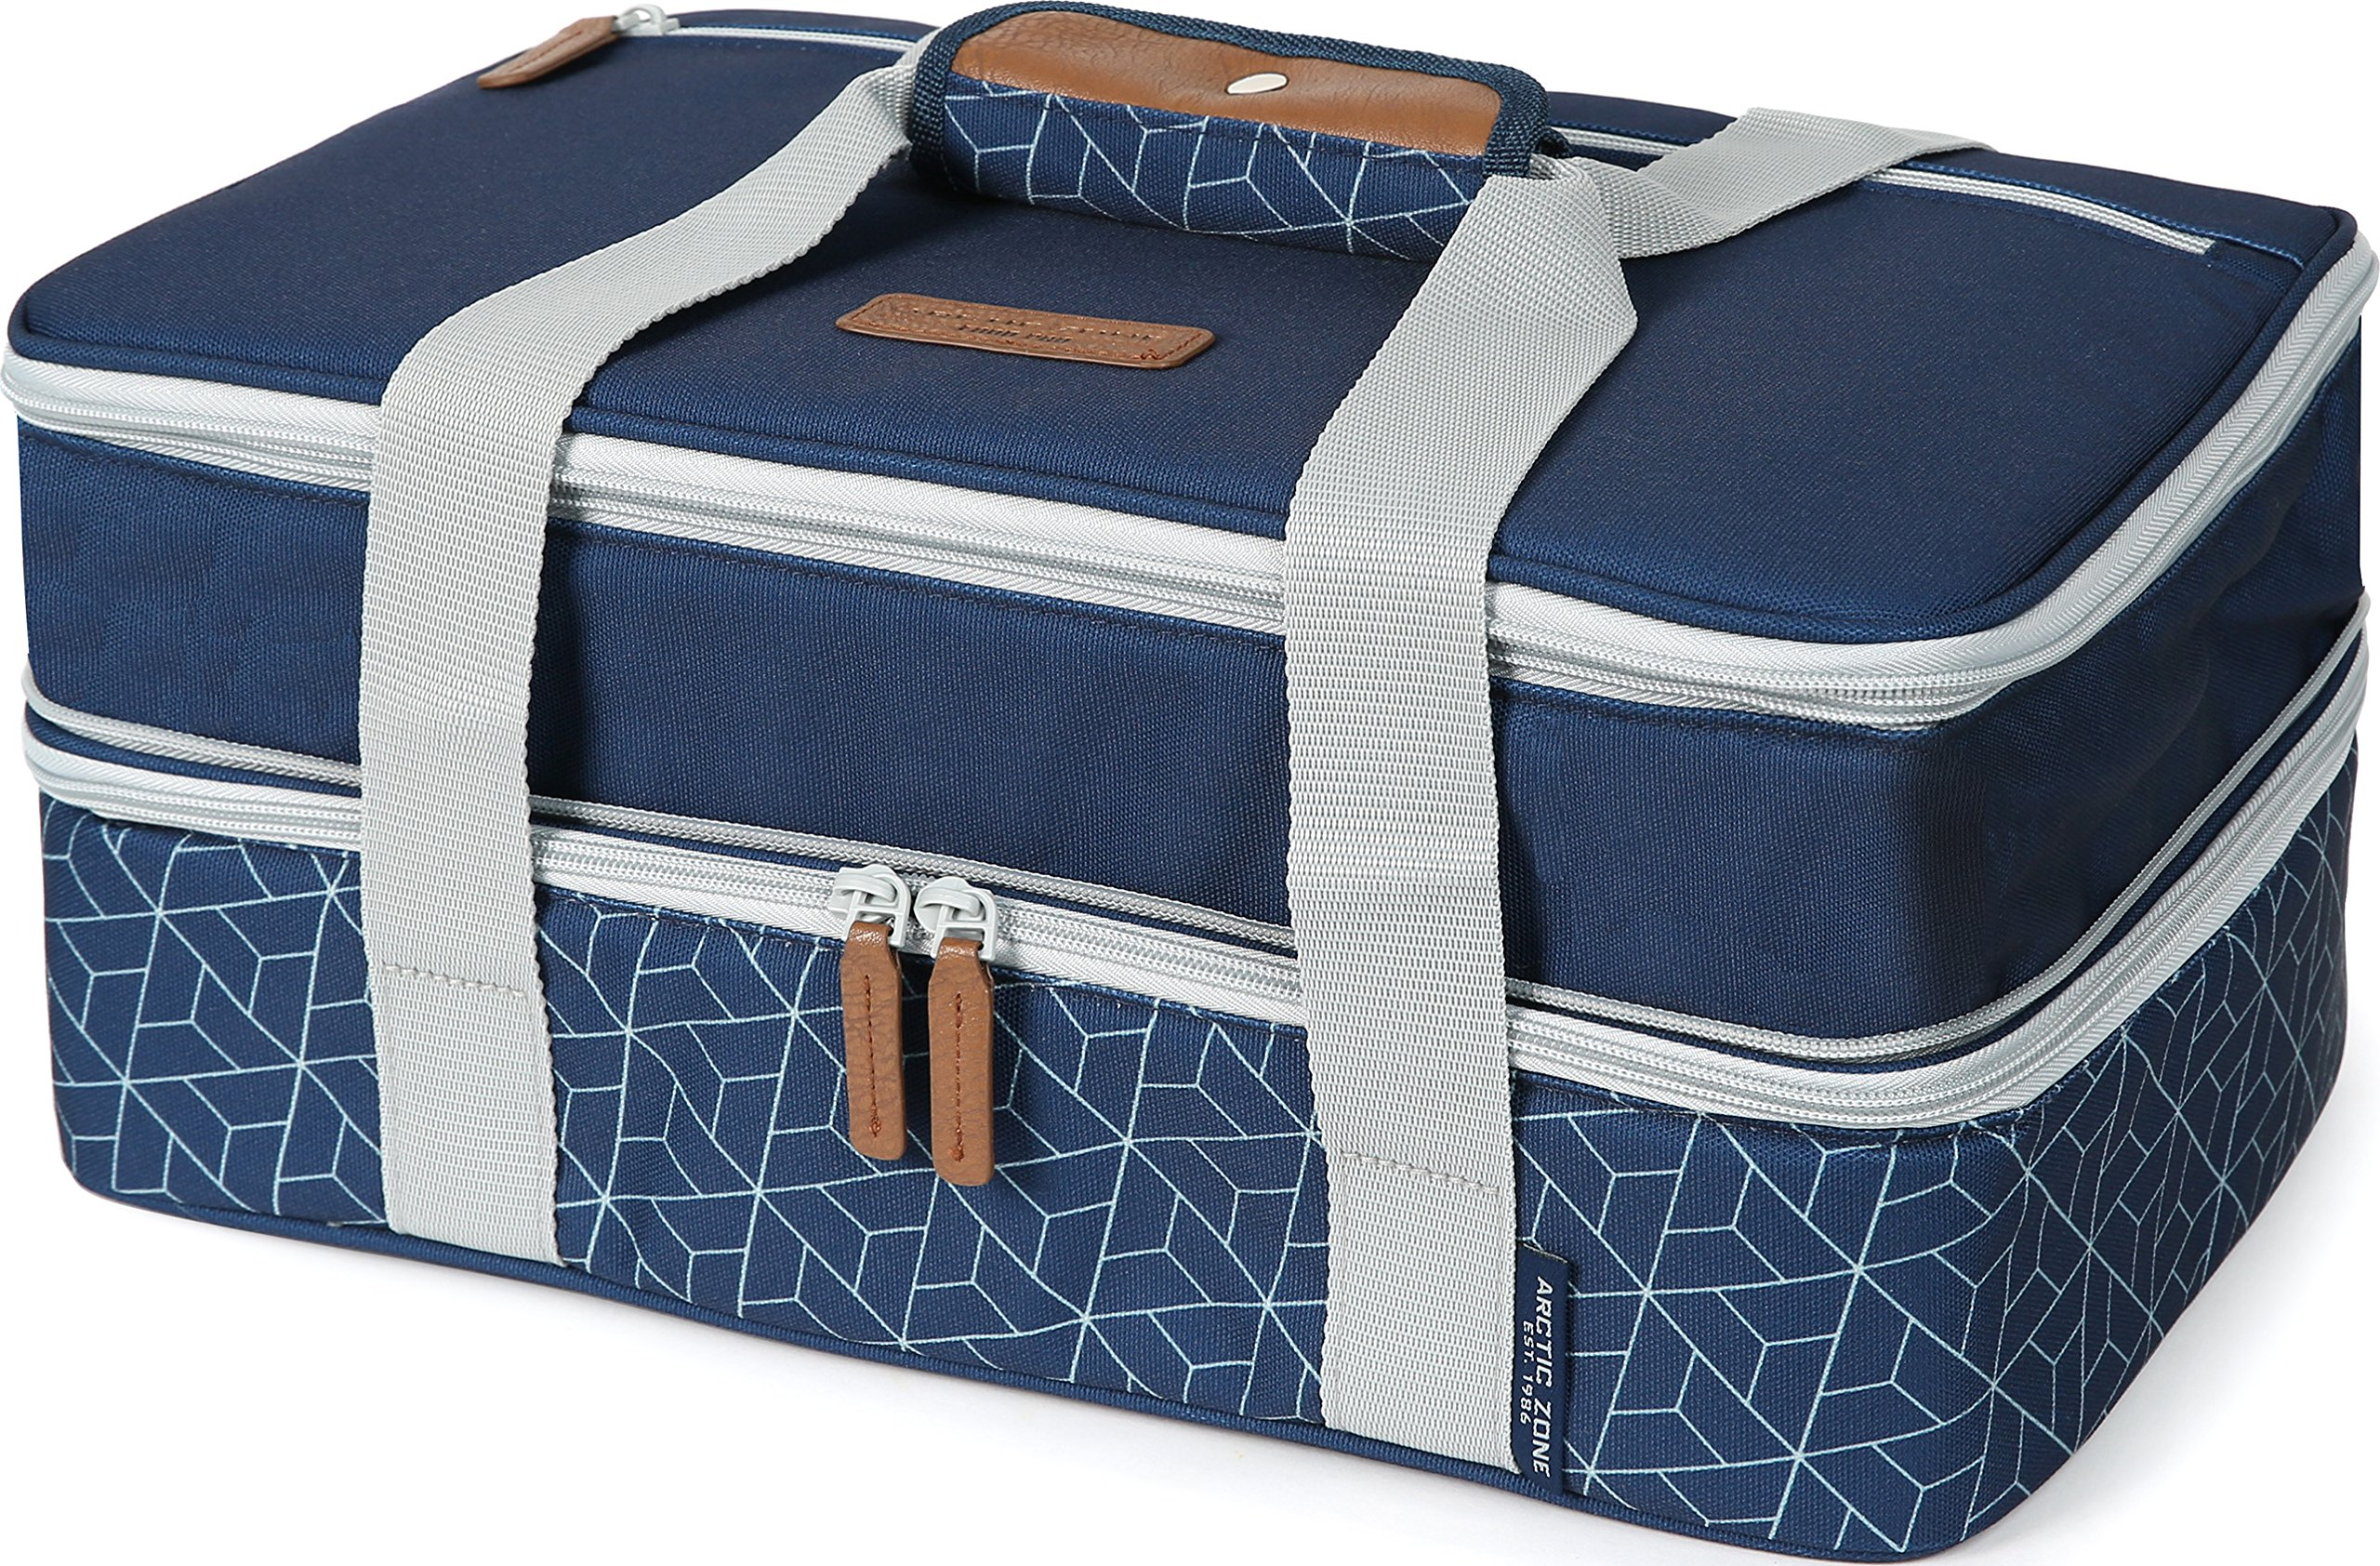 Arctic Zone 2007IL15284B Expandable Thermal Insulated Food Carrier, Navy by Arctic Zone